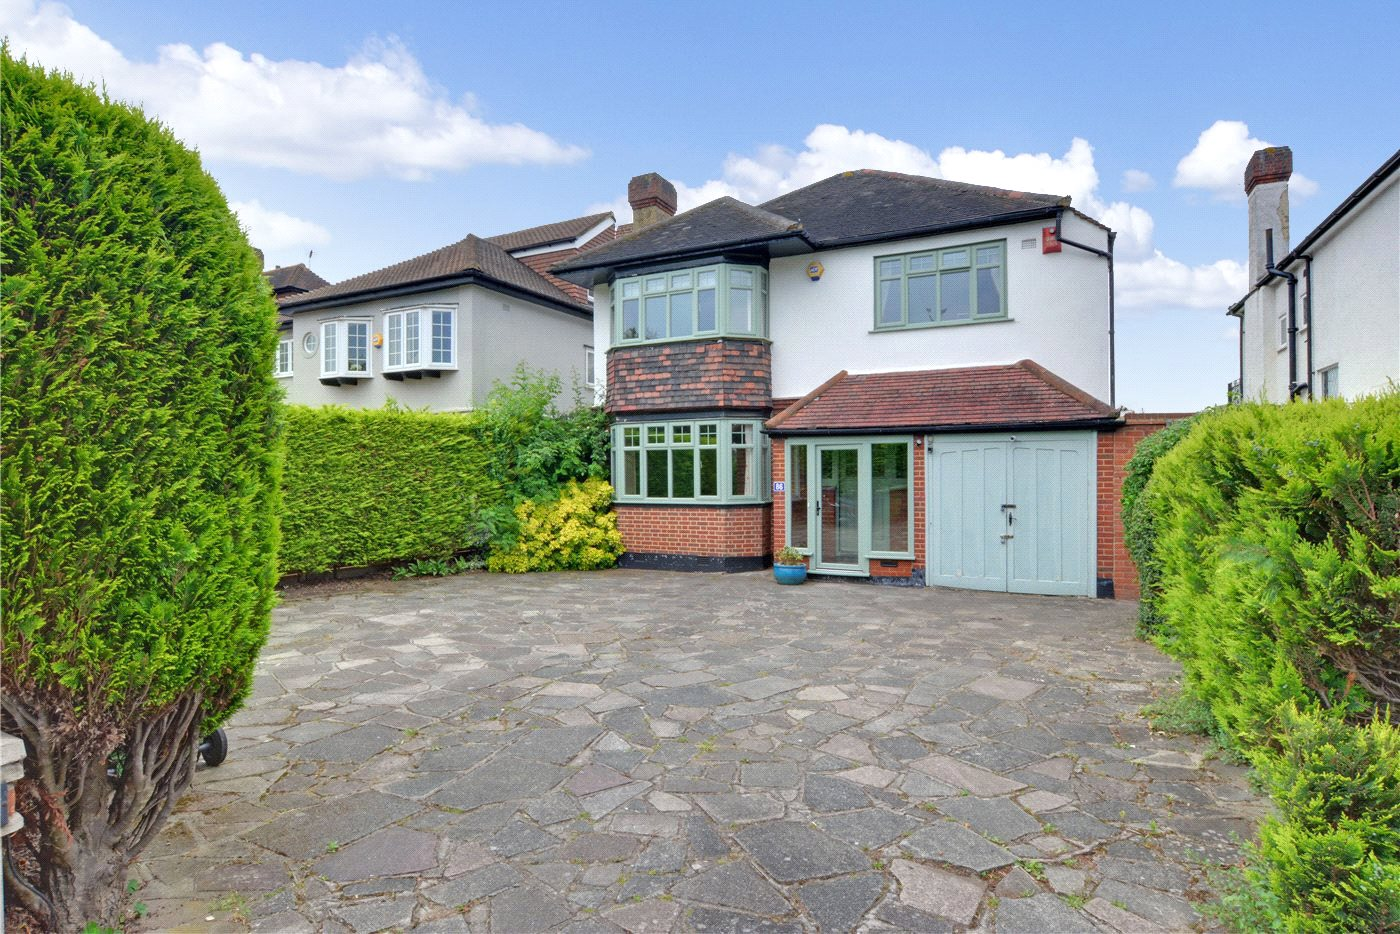 4 bedroom property for sale in Grove Park Road, London, SE9 - Offers